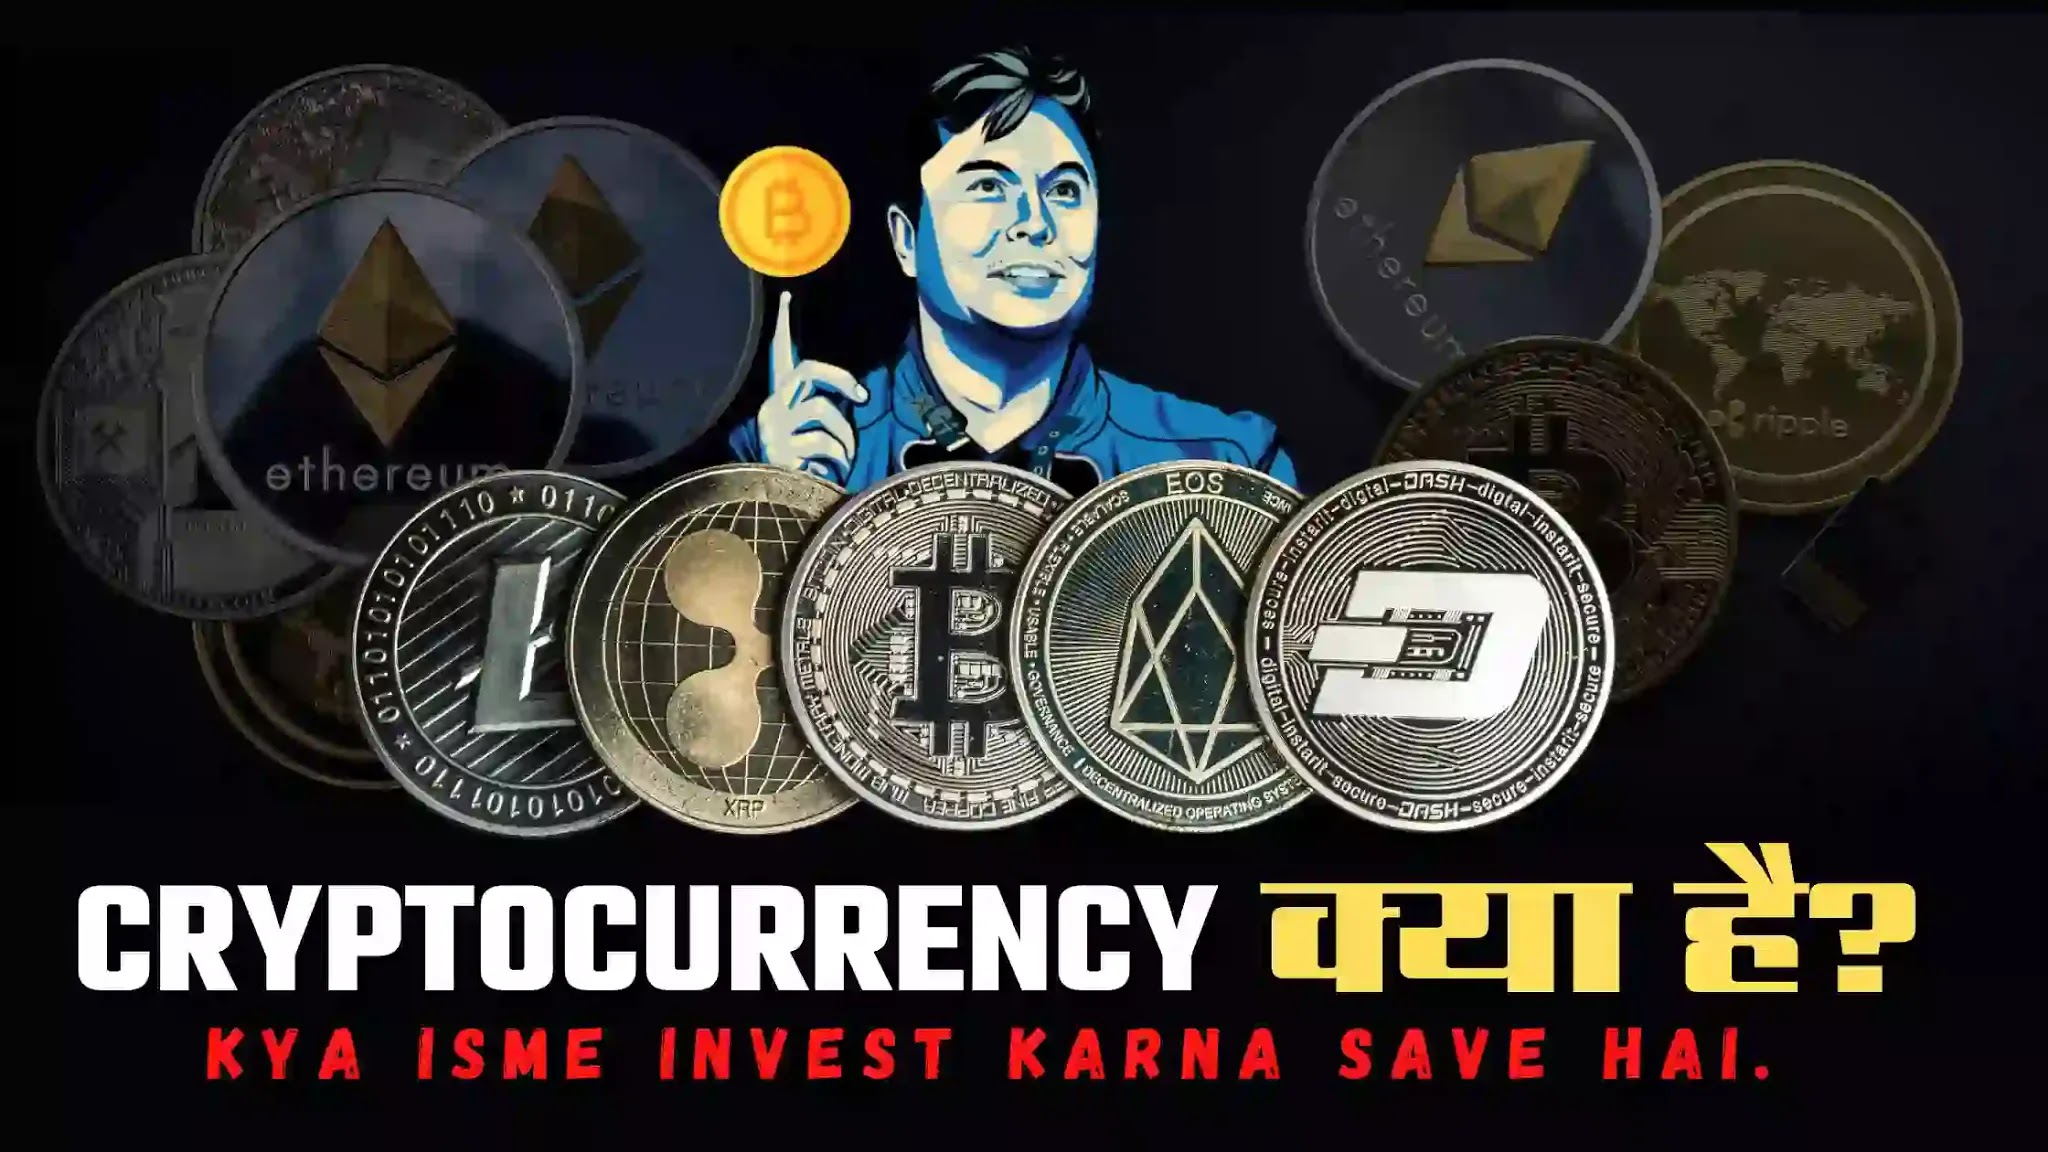 Cryptocurrency, What-is-cryptocurrency, bitcoin, ethereum,